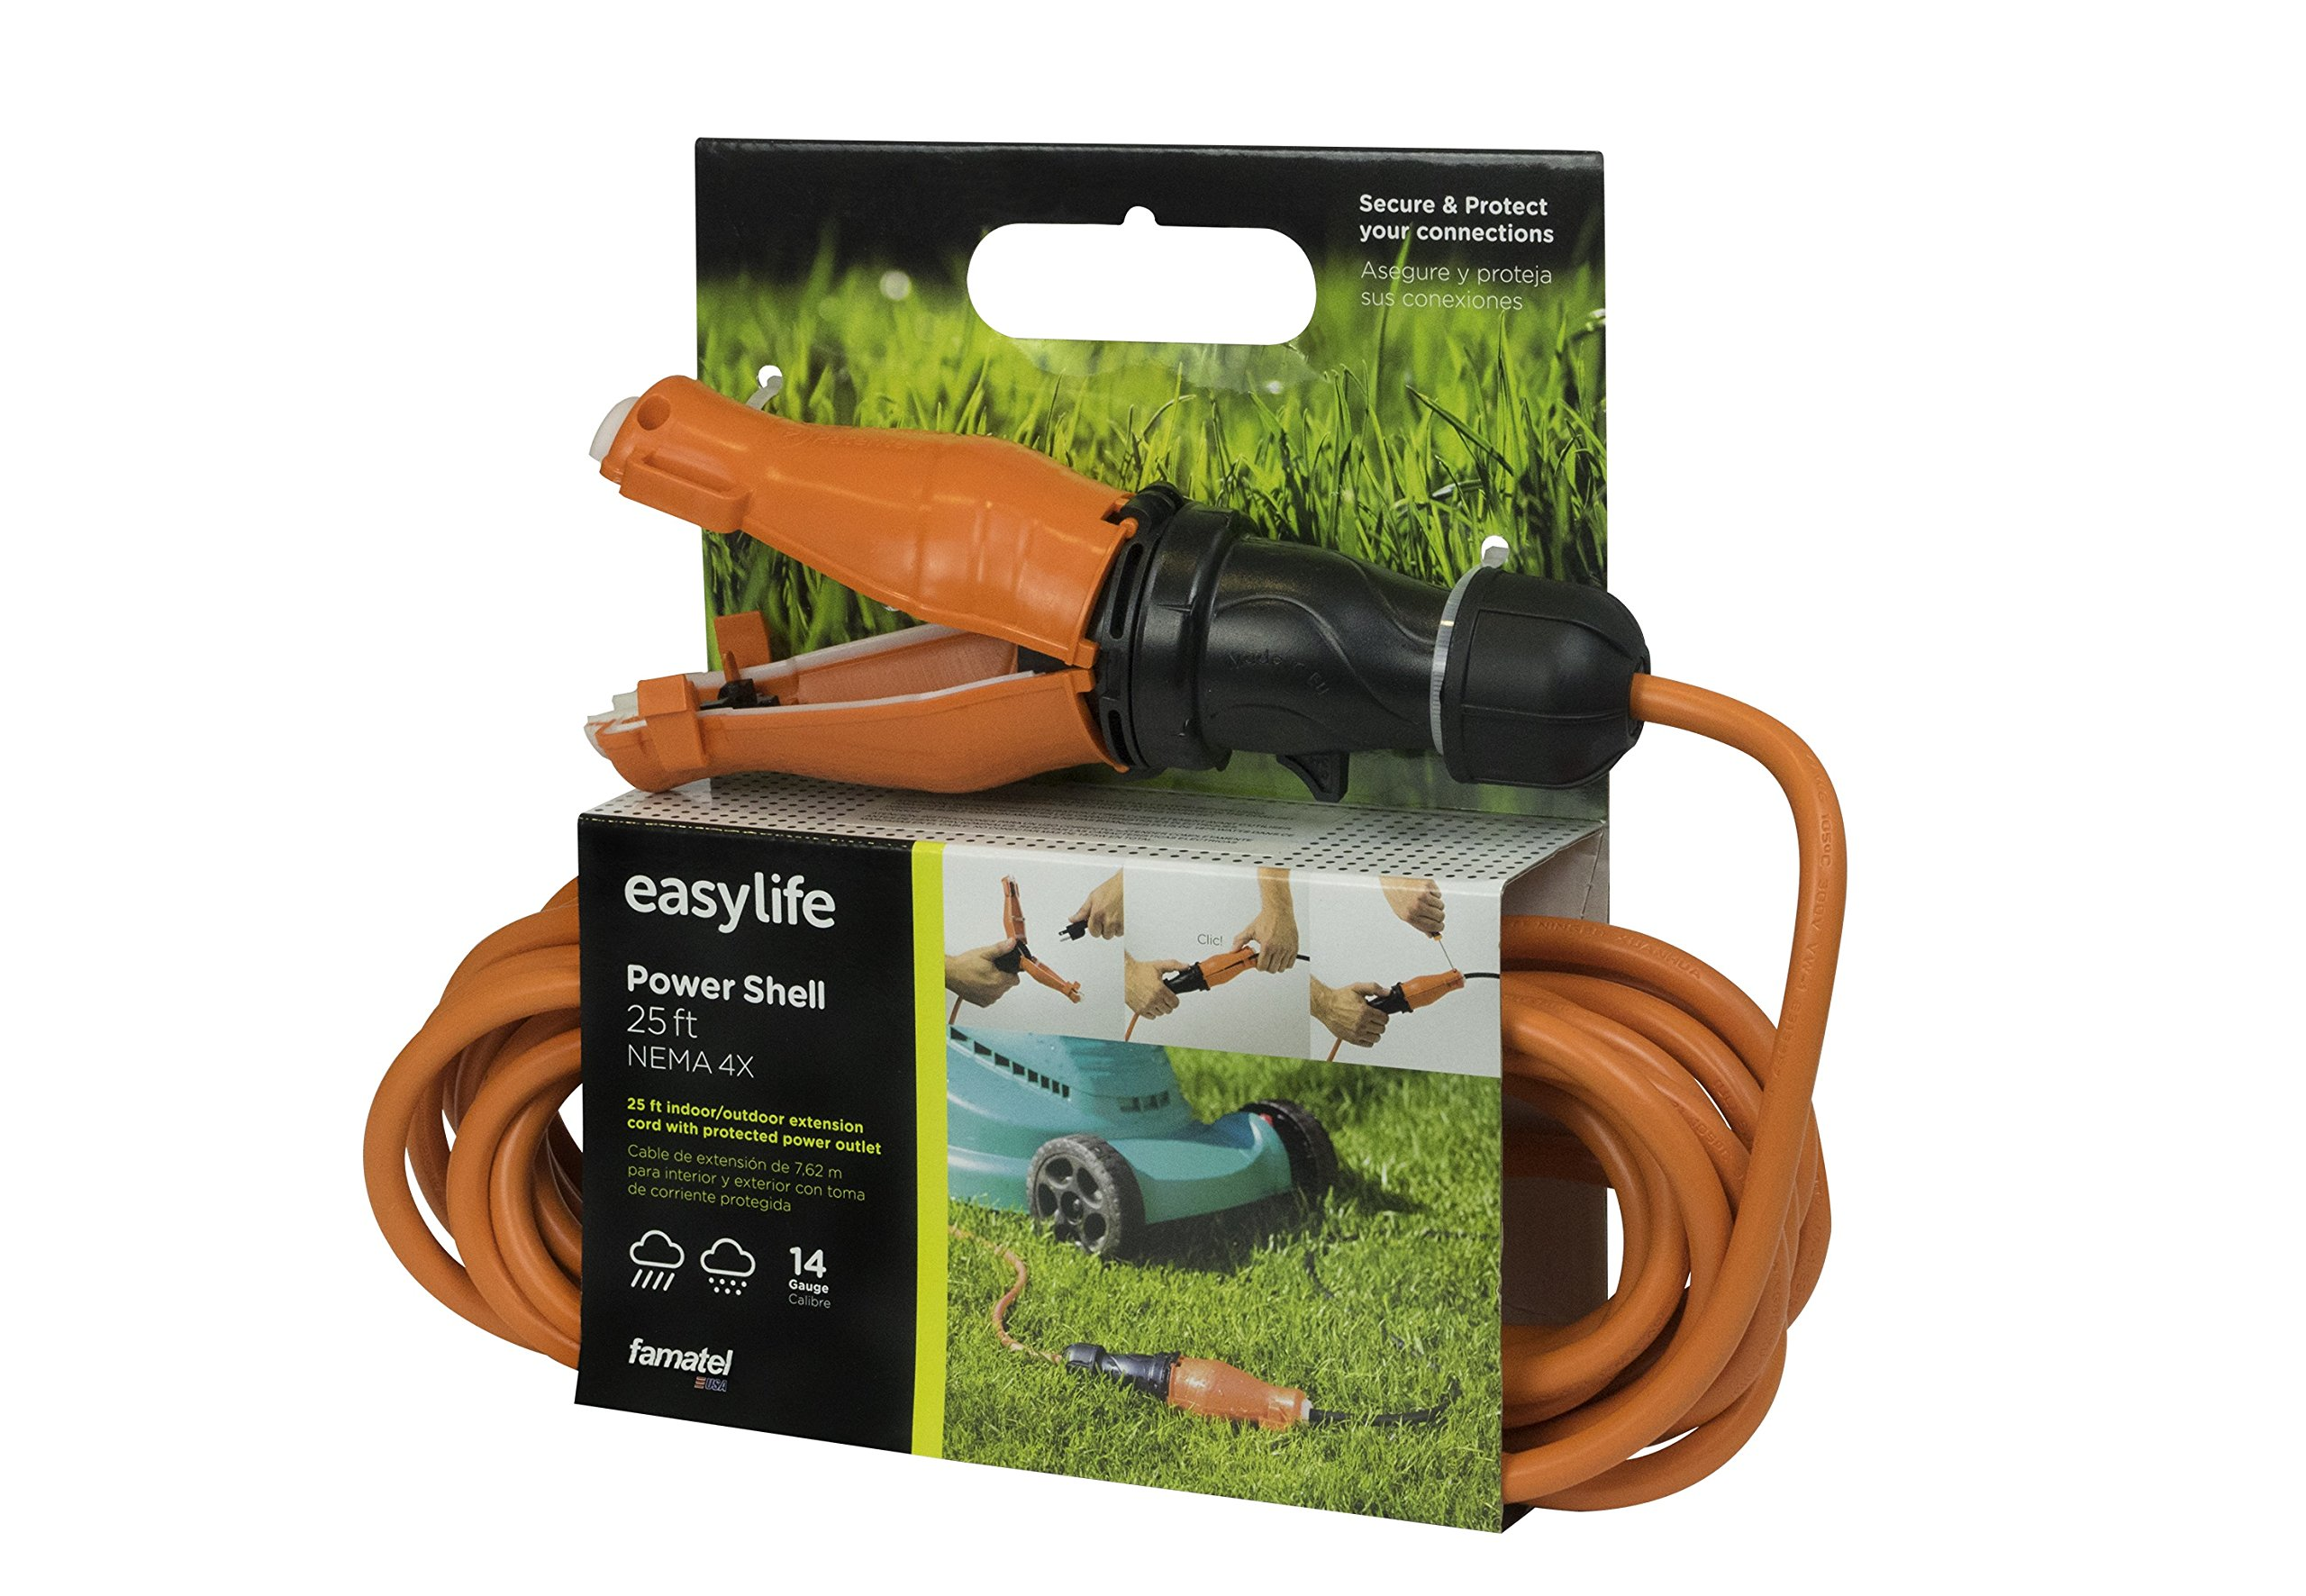 25 ft Extension Cord with Connector Safety Seal Protector Weatherproof - 14/3 Gauge - Rated for Outdoors - ETL Listed